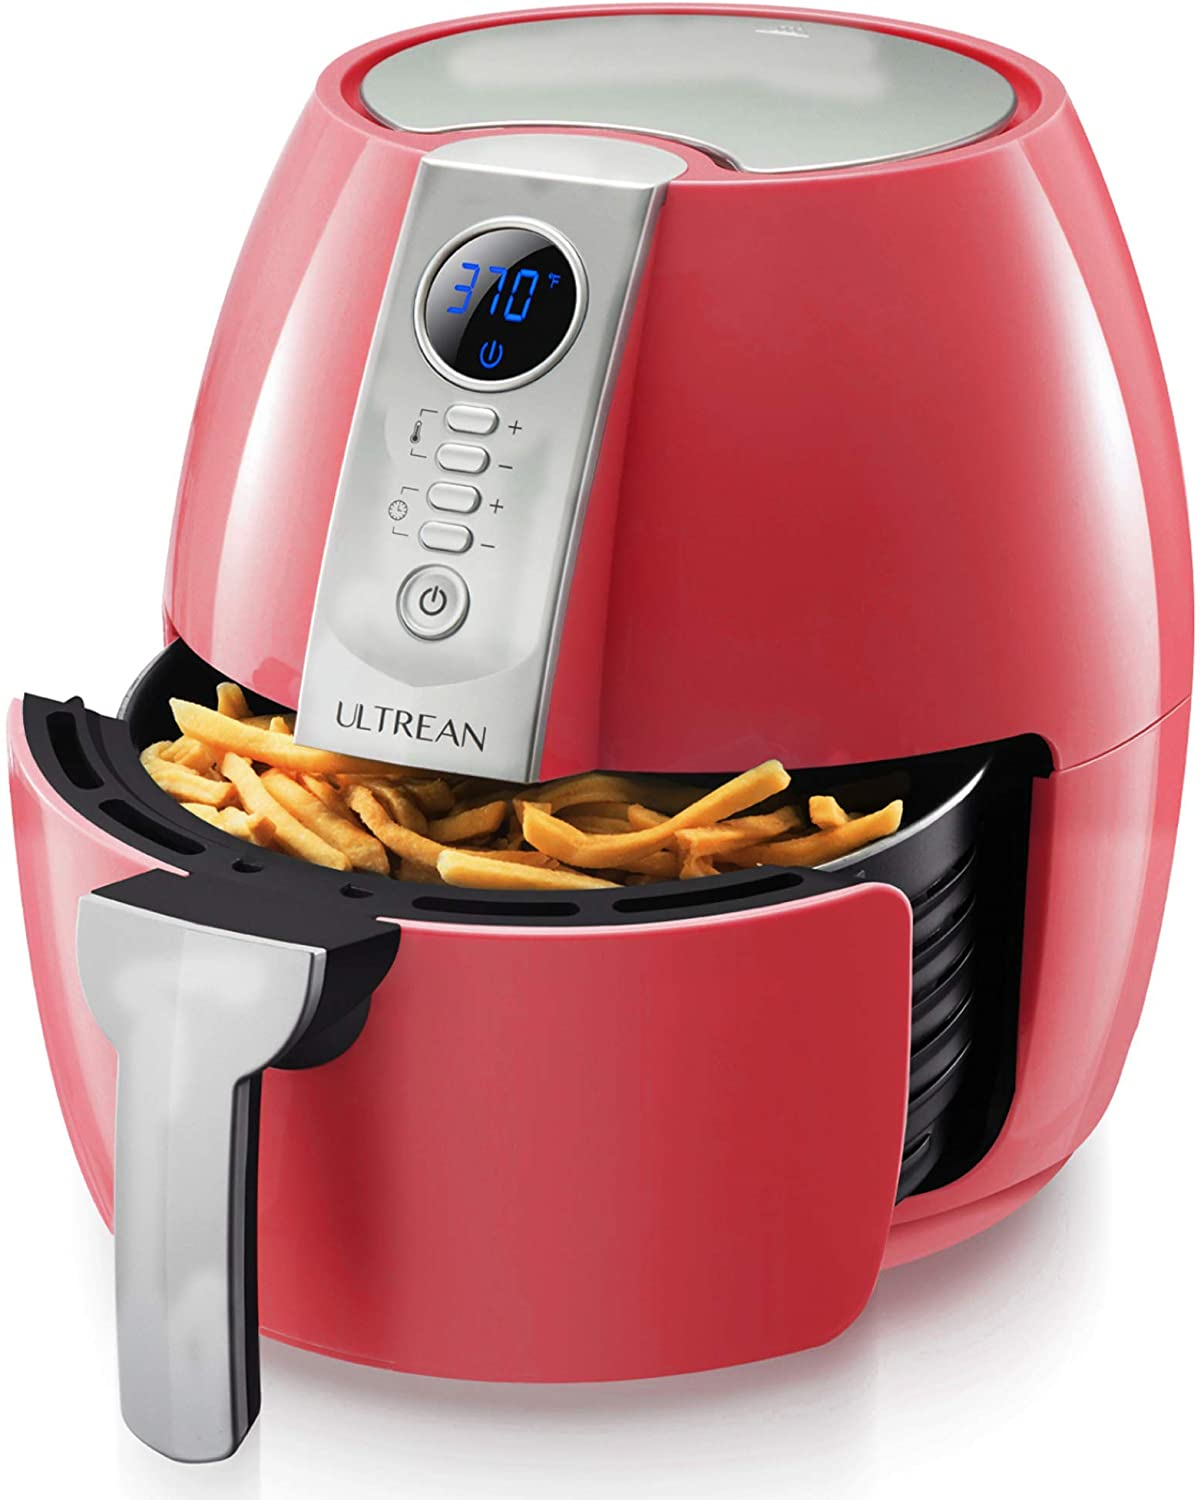 Ultrean Air Fryer, 4.2 Quart (4 Liter) Electric Hot Air Fryers Oven Oilless Cooker with LCD Digital Screen and Nonstick Frying Pot, UL Certified, 1-Year Warranty, 1500W (Red) (Renewed)